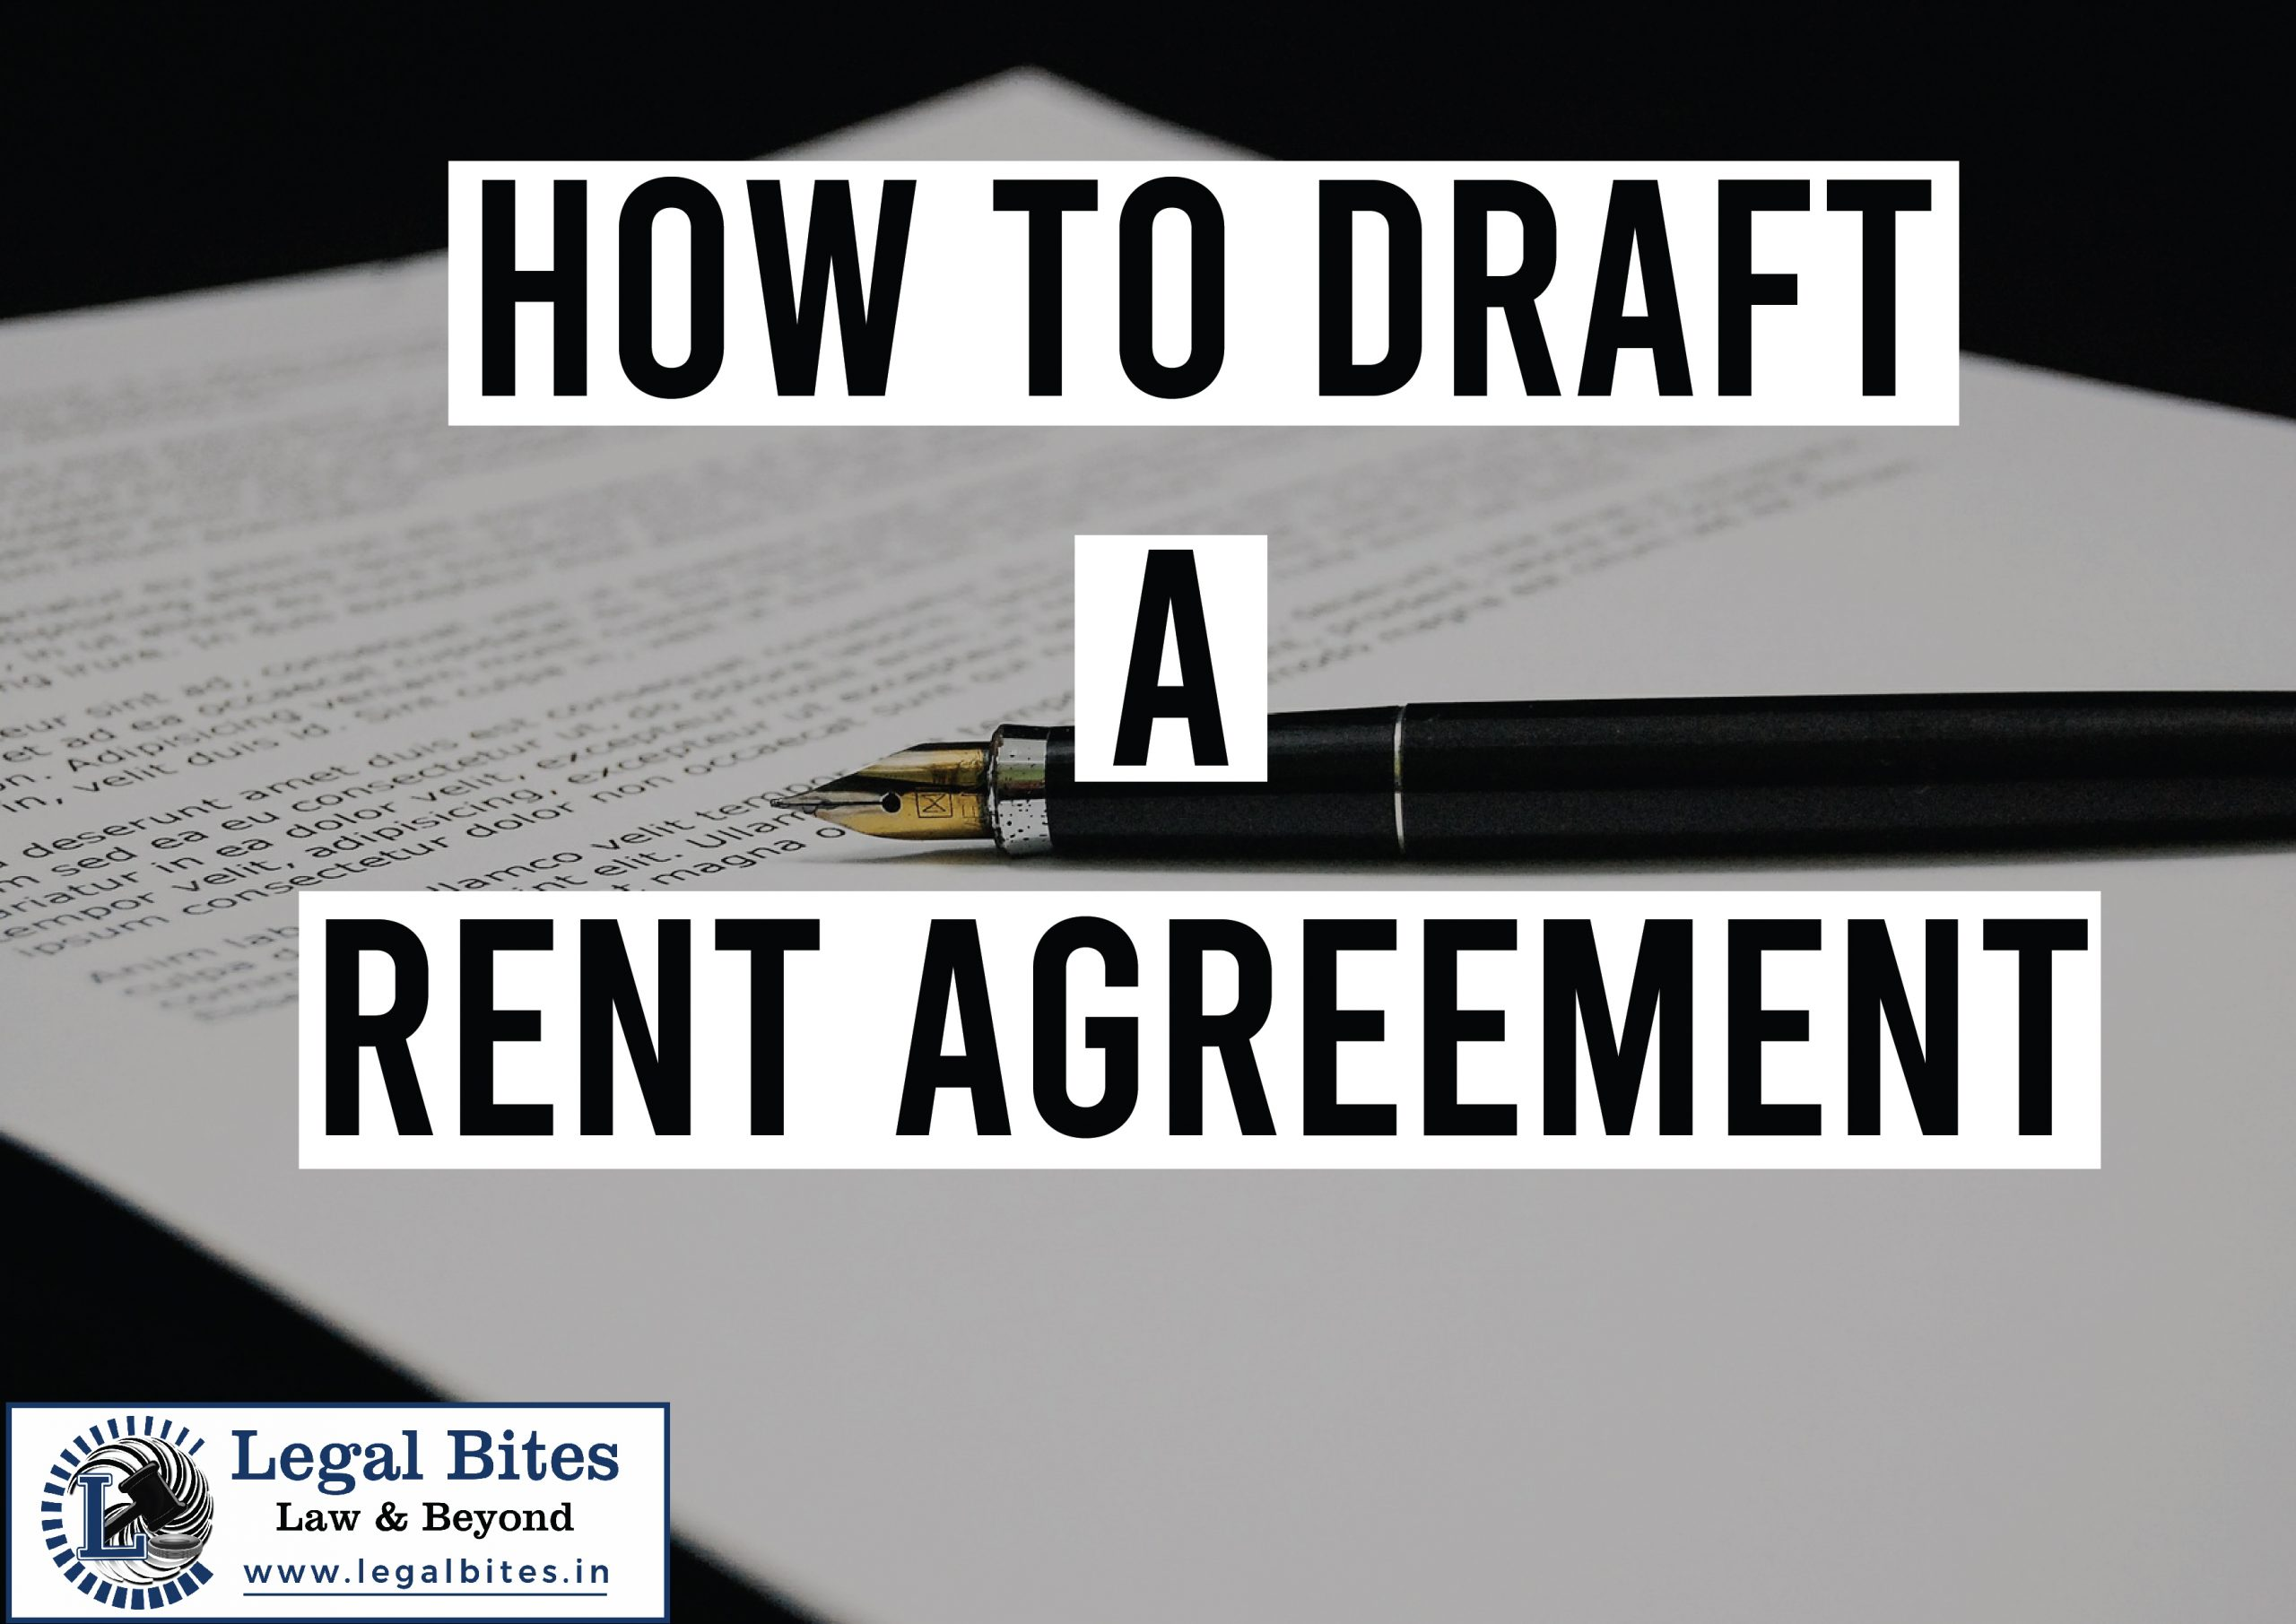 How to draft a Rent Agreement